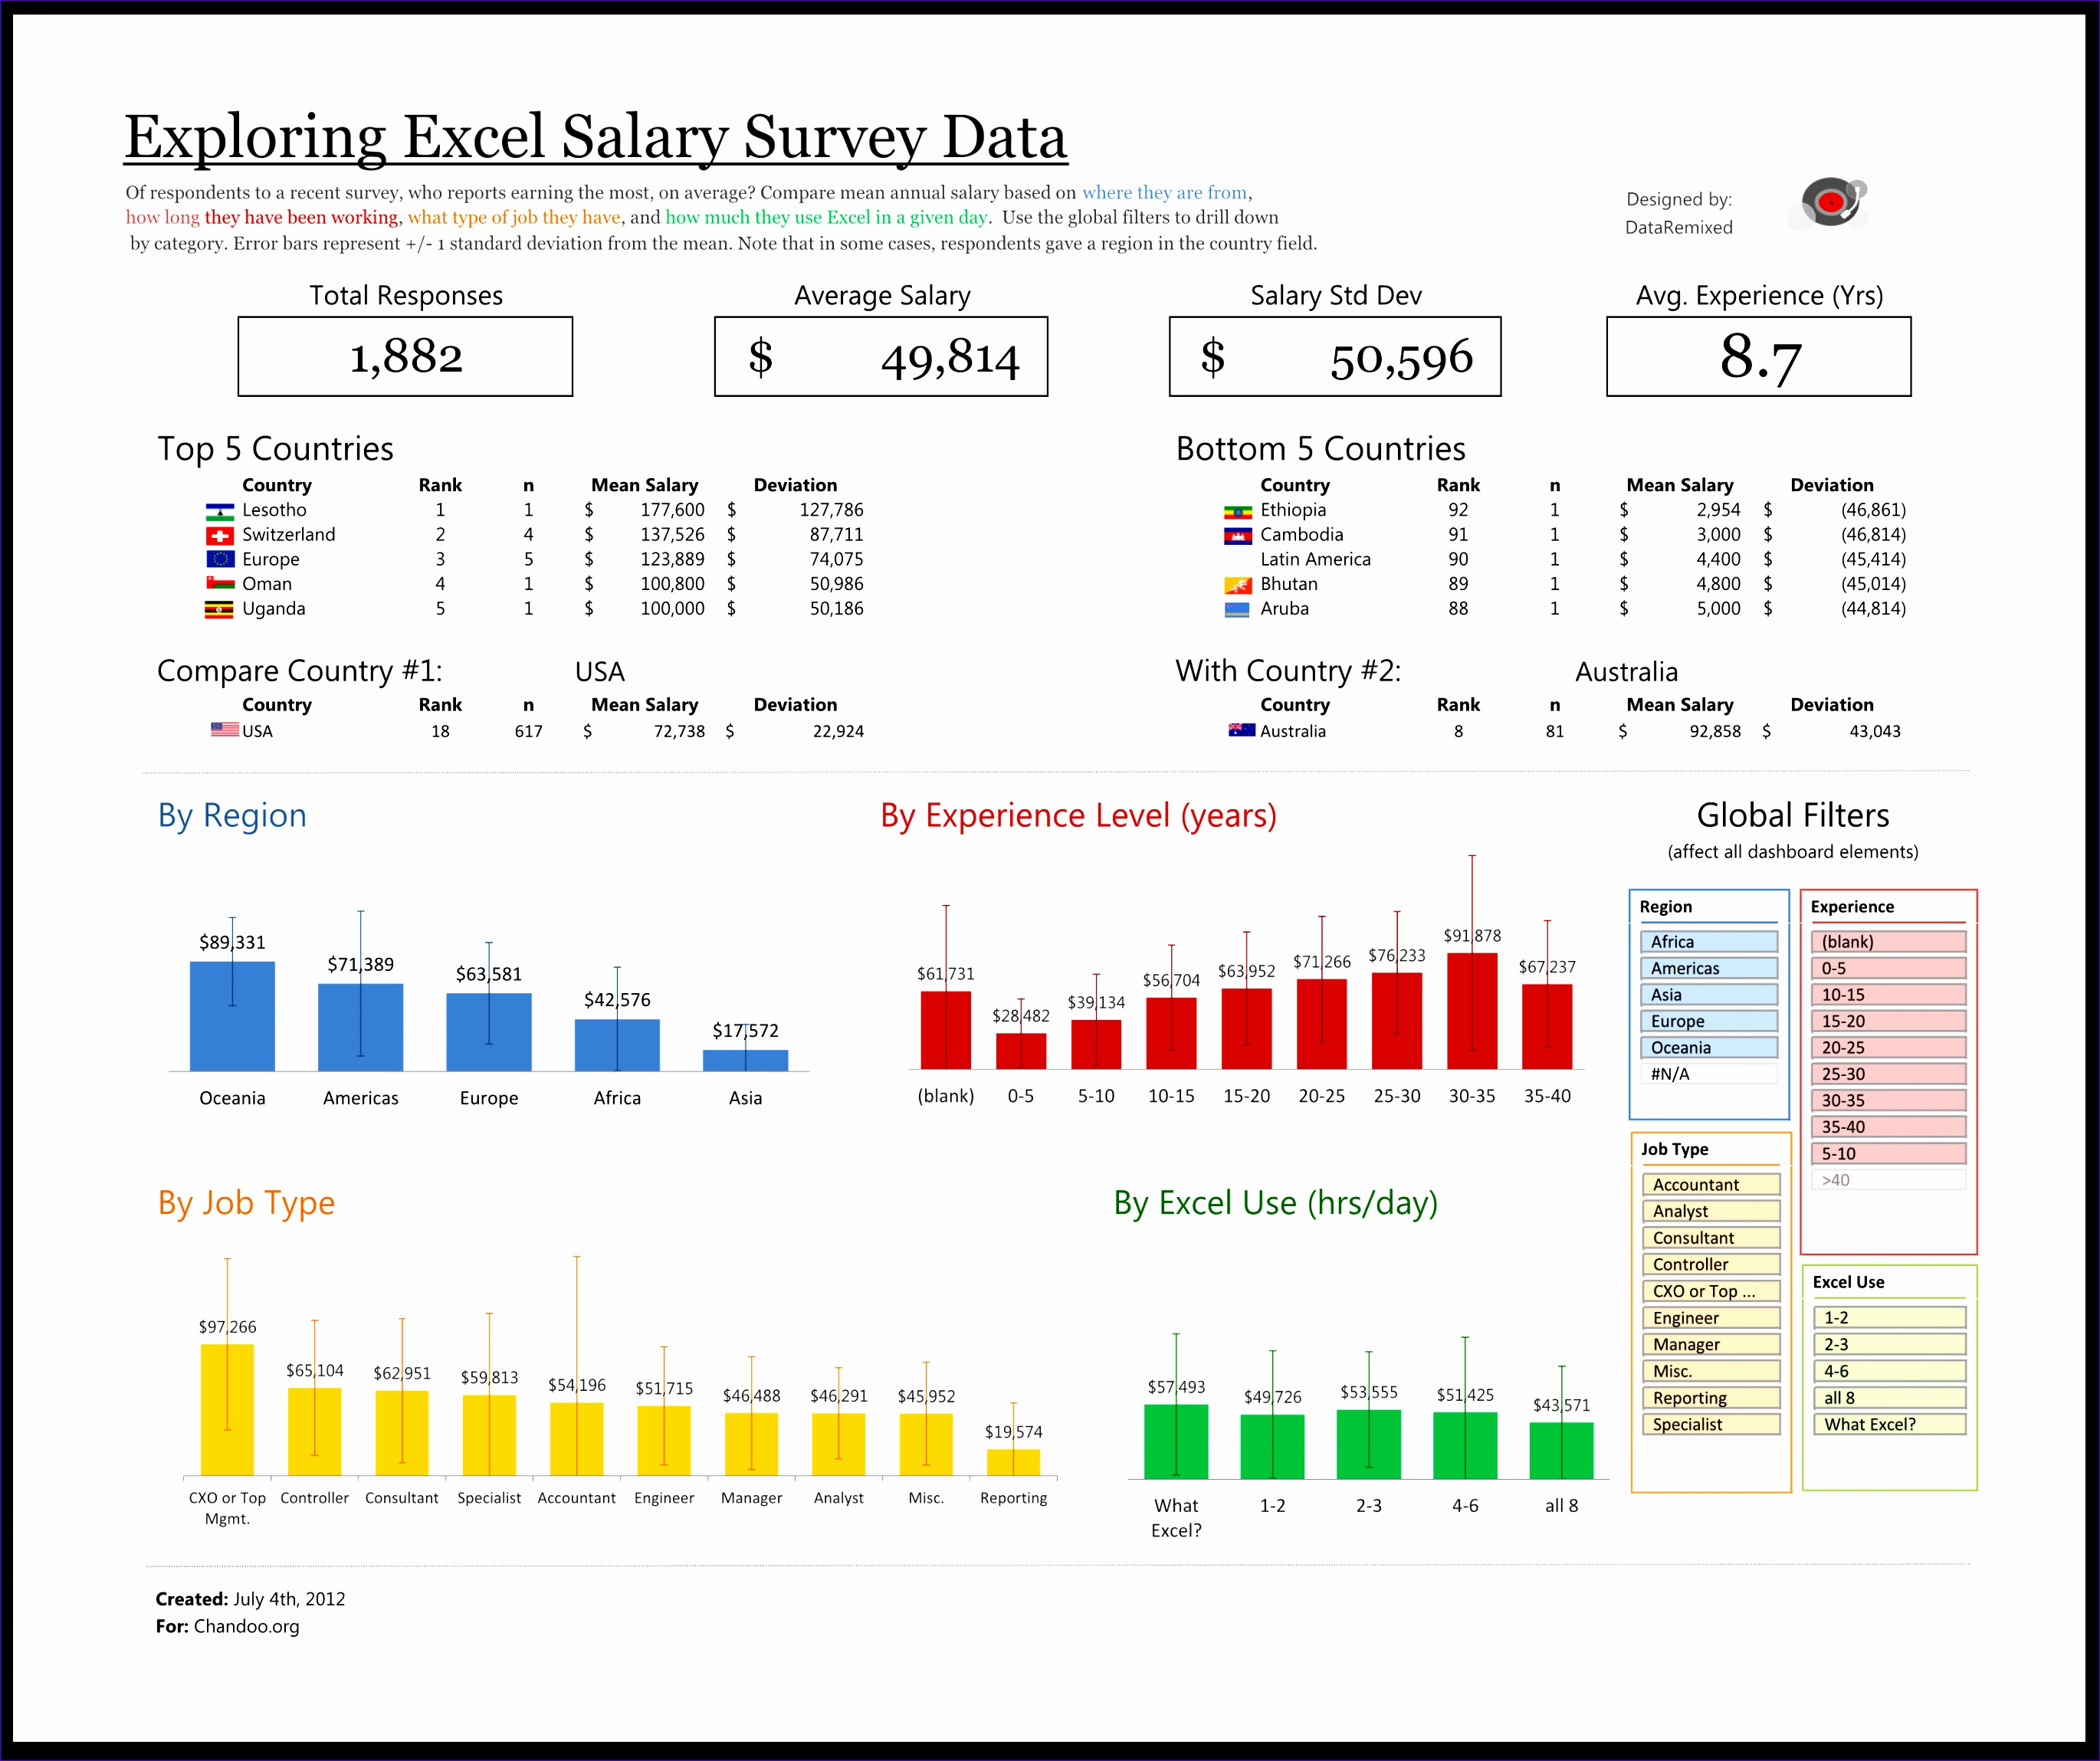 Free Excel Dashboard Templates 2010 Wkycu Inspirational Exploring Survey Data with Excel